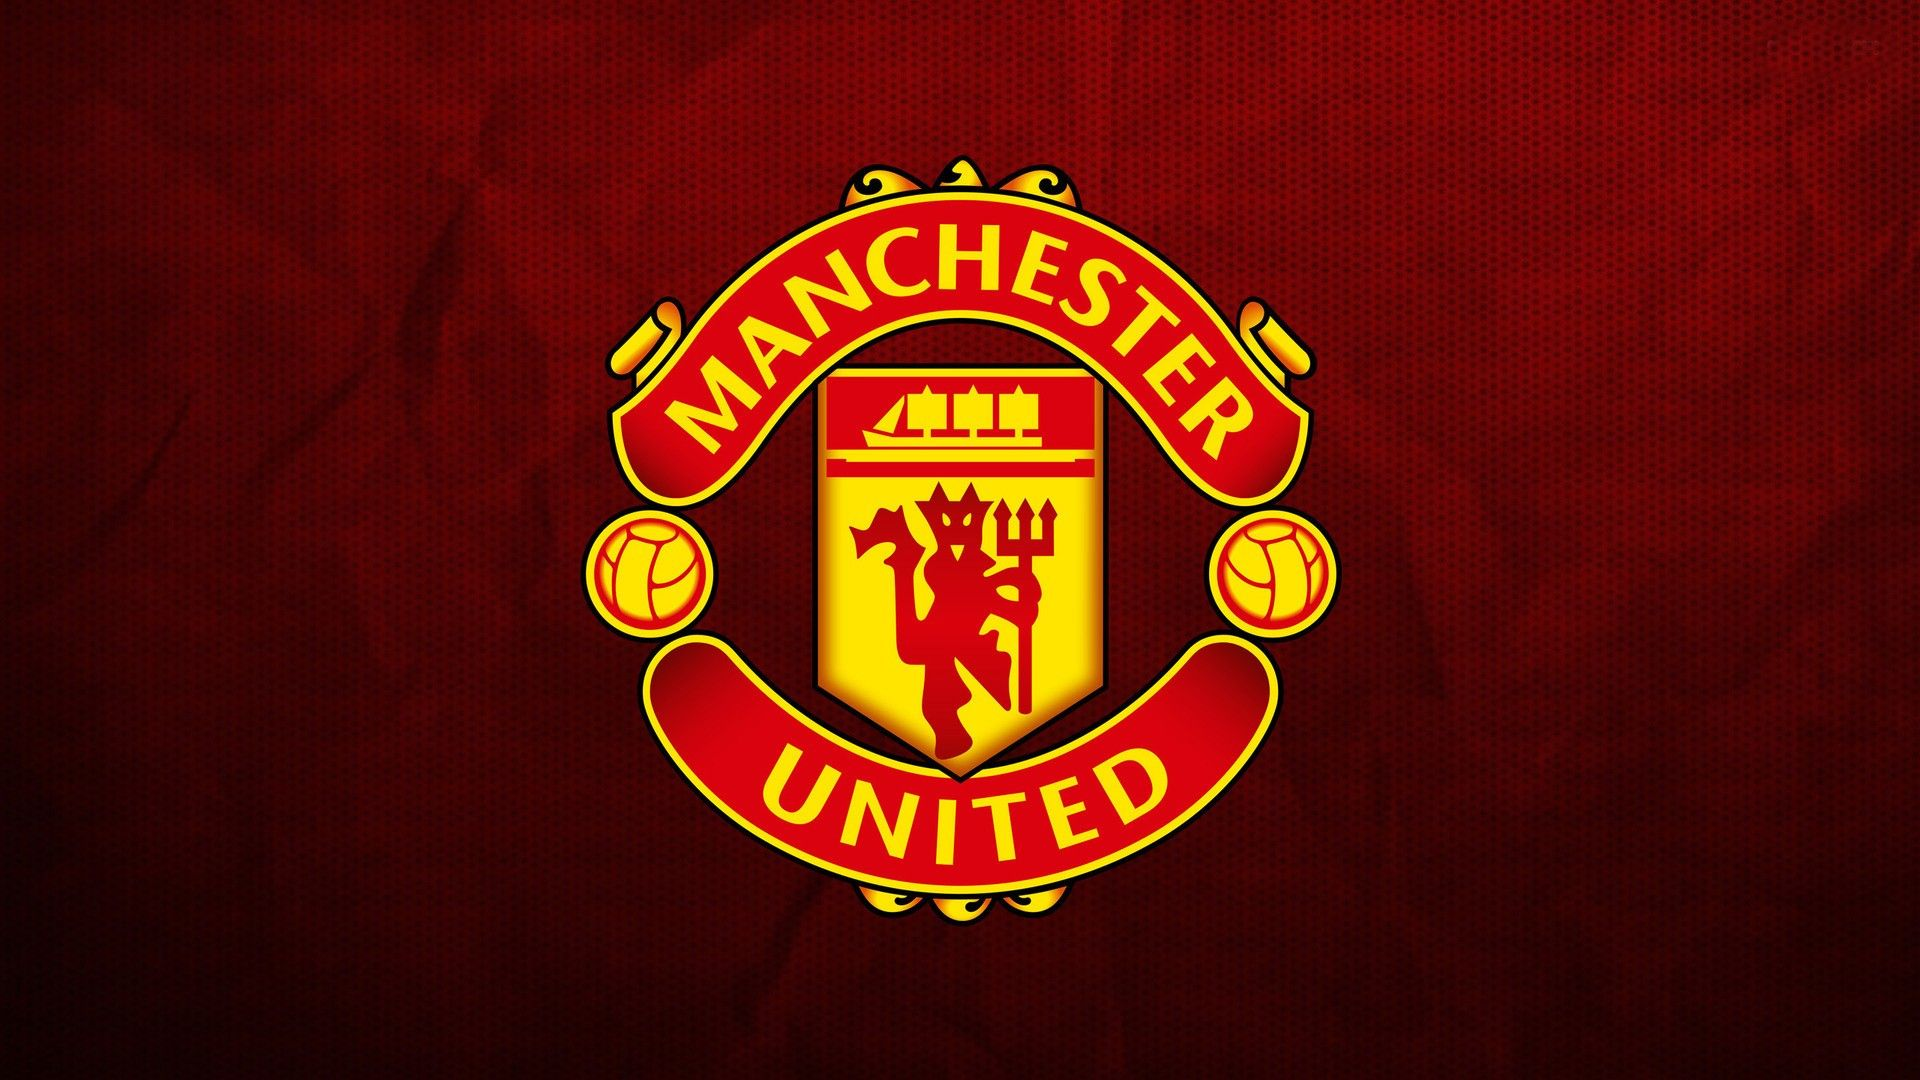 Manchester united wallpaper manchester united logo manchester manchester united wallpaper manchester united logo manchester united devil logo voltagebd Gallery